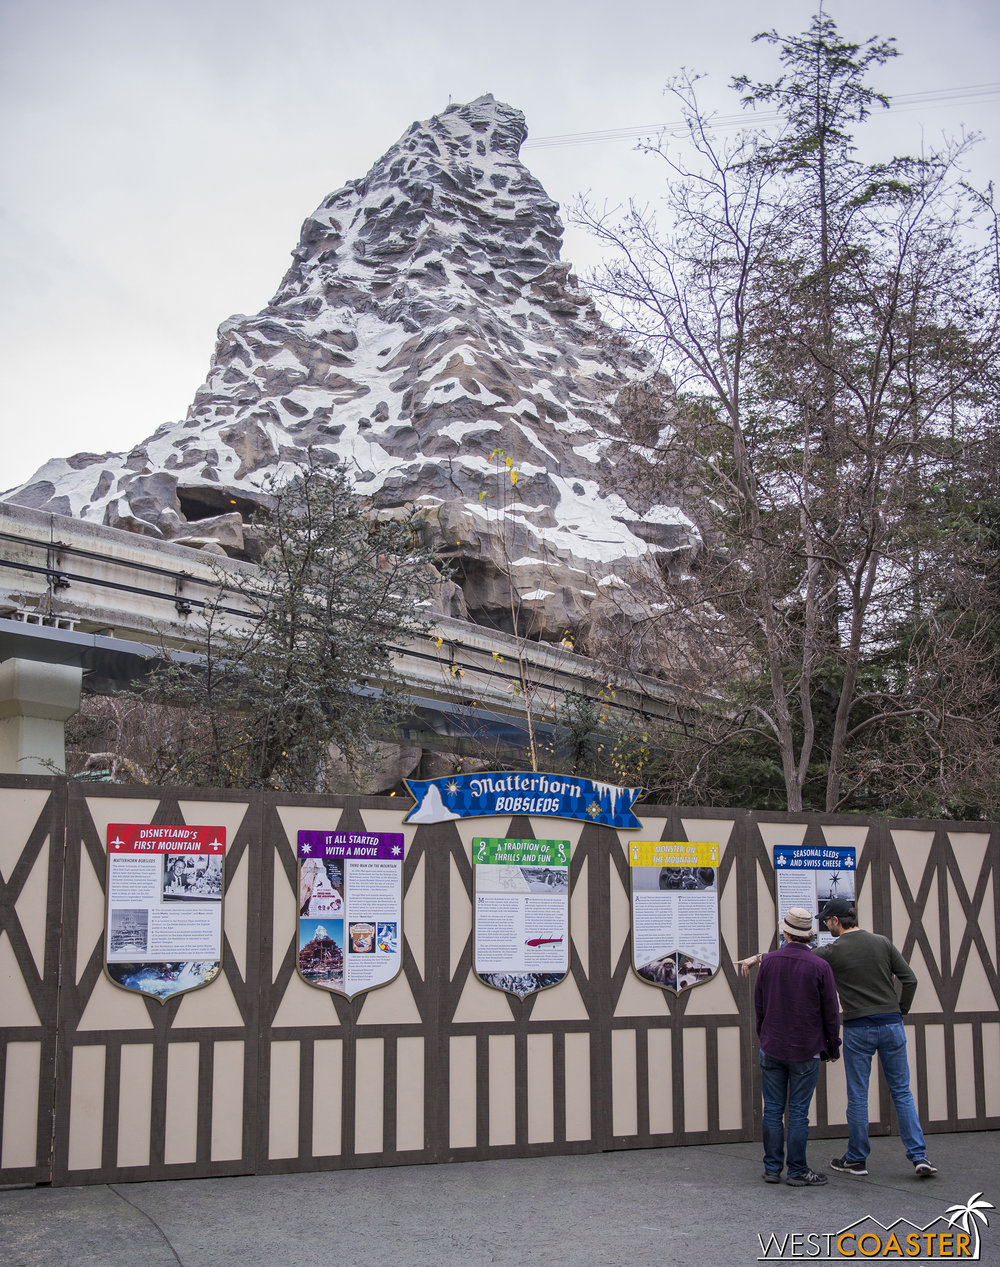 Also closed for a while is the Matterhorn Bobsleds.